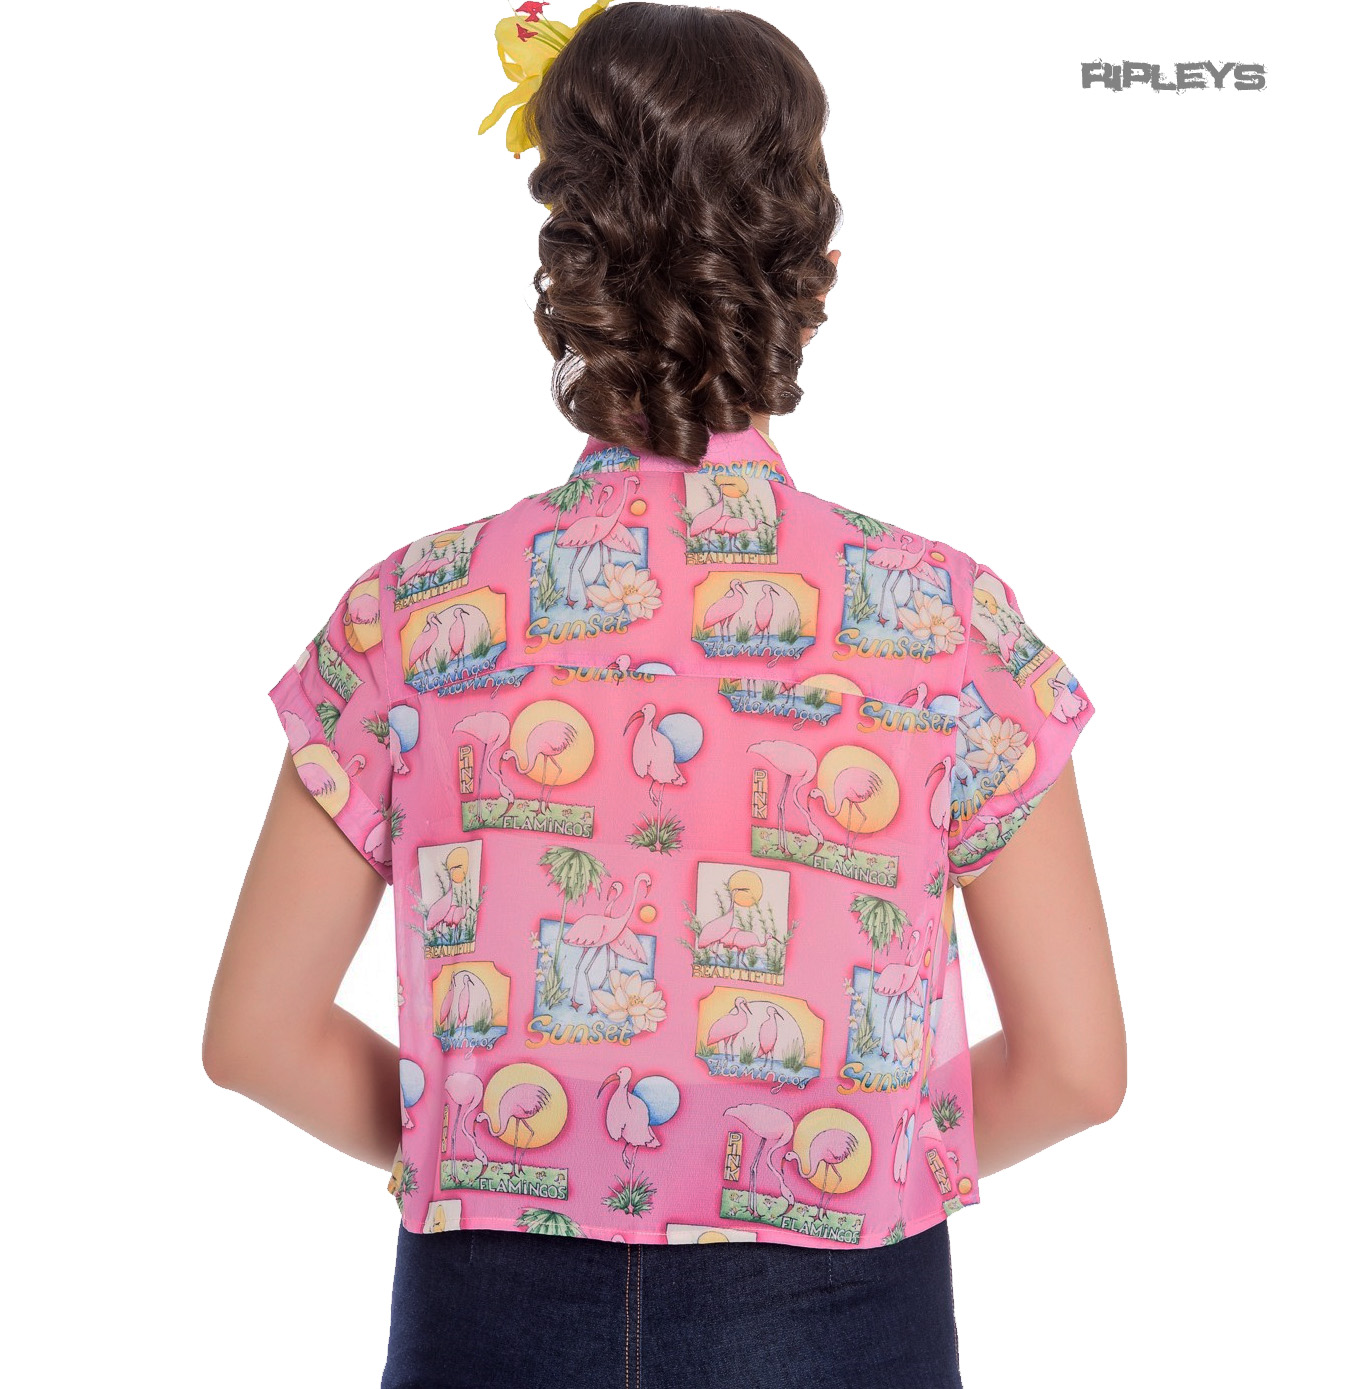 Hell-Bunny-50s-Retro-Top-Pink-Flamingo-MAXINE-Cropped-Blouse-Shirt-All-Sizes thumbnail 12